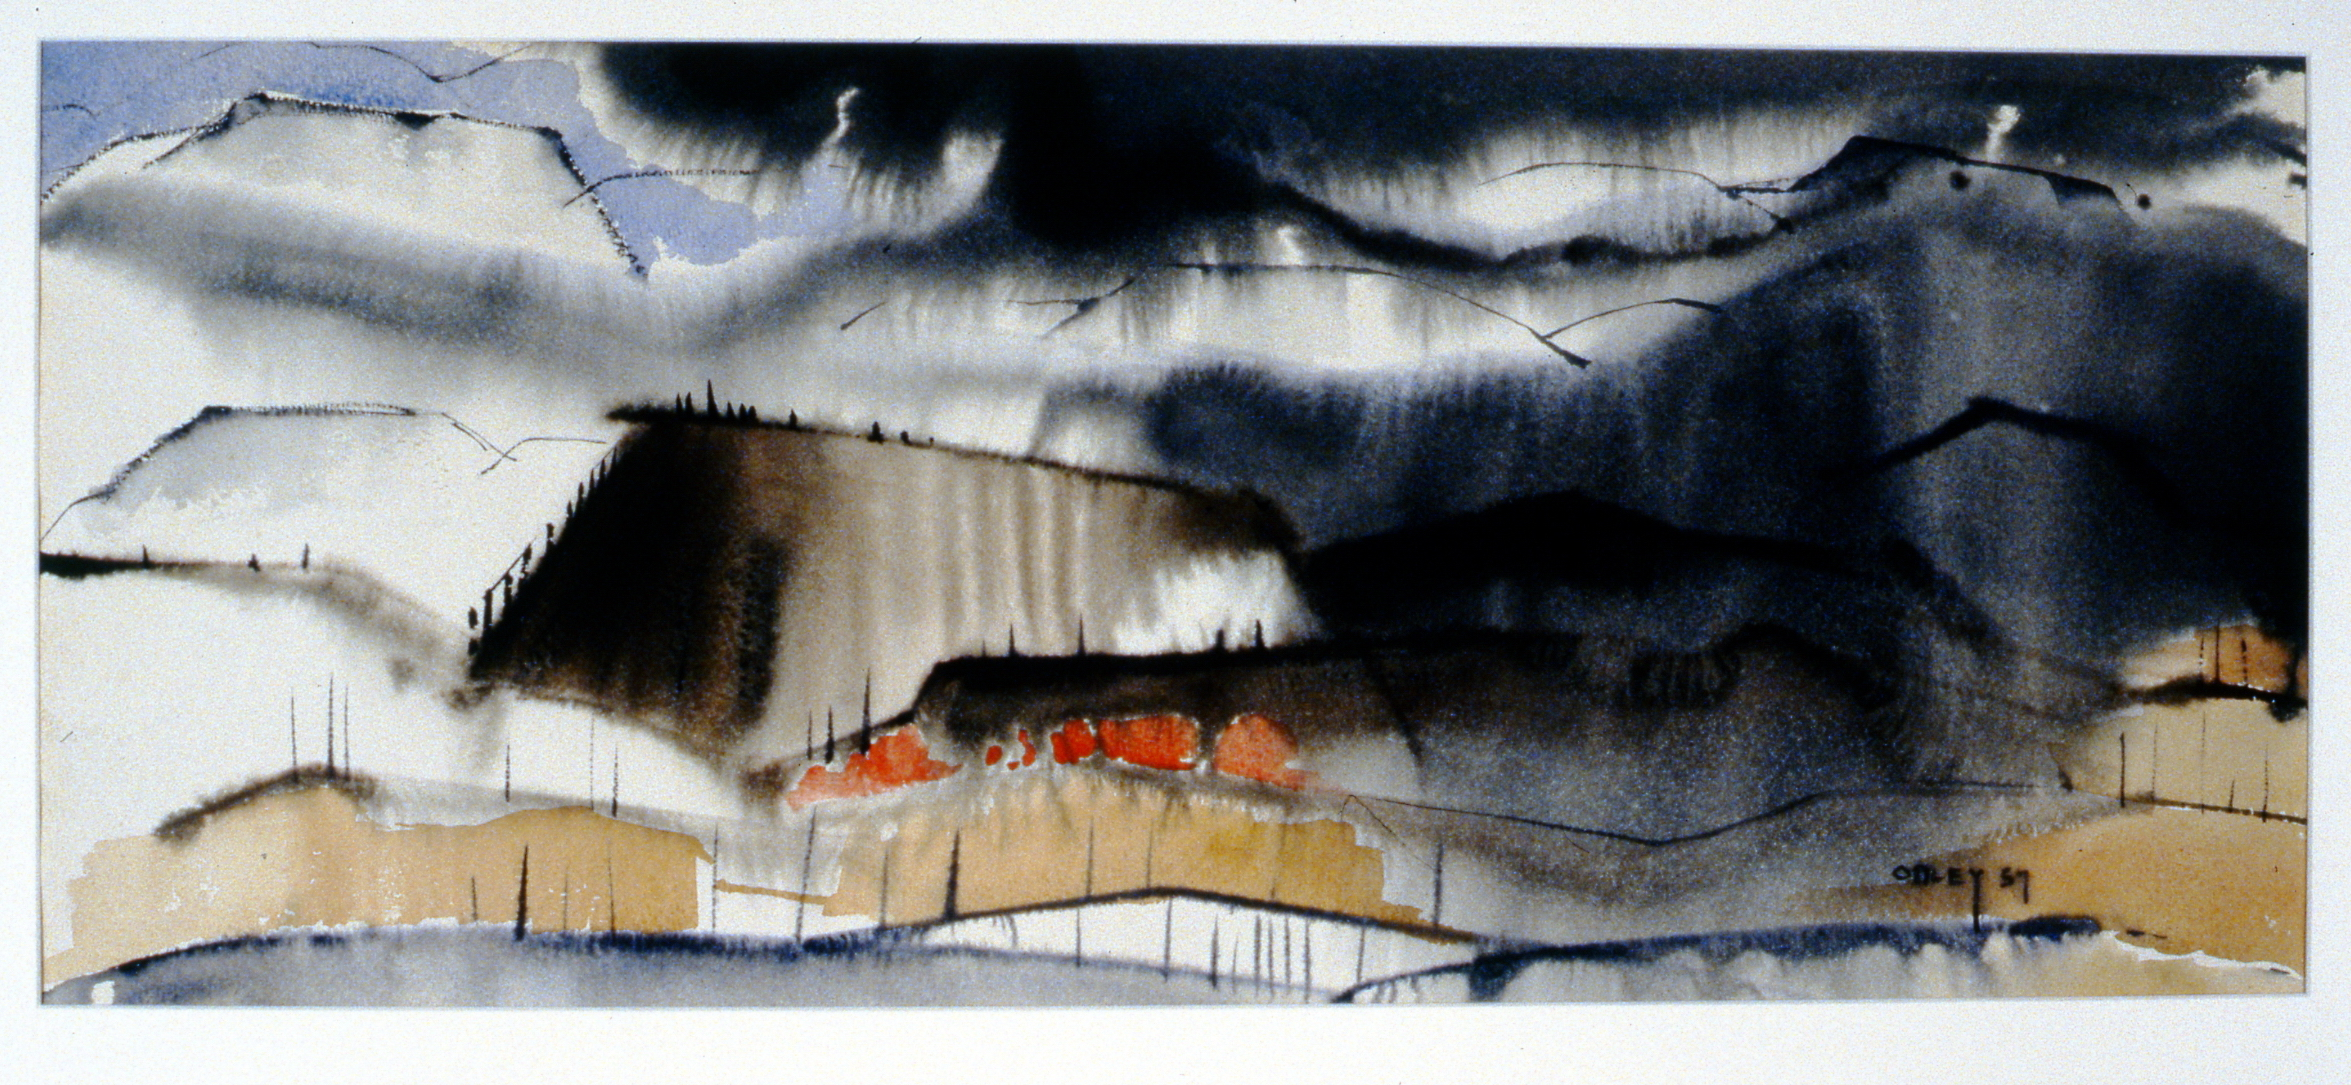 Rain Squall - Okanagan Landscape , n.d., Toni Onley, watercolour, 32.4 cm x 75 cm, 2001.04.11. Gift of the Estate of Ethel & Maurice Joslin.